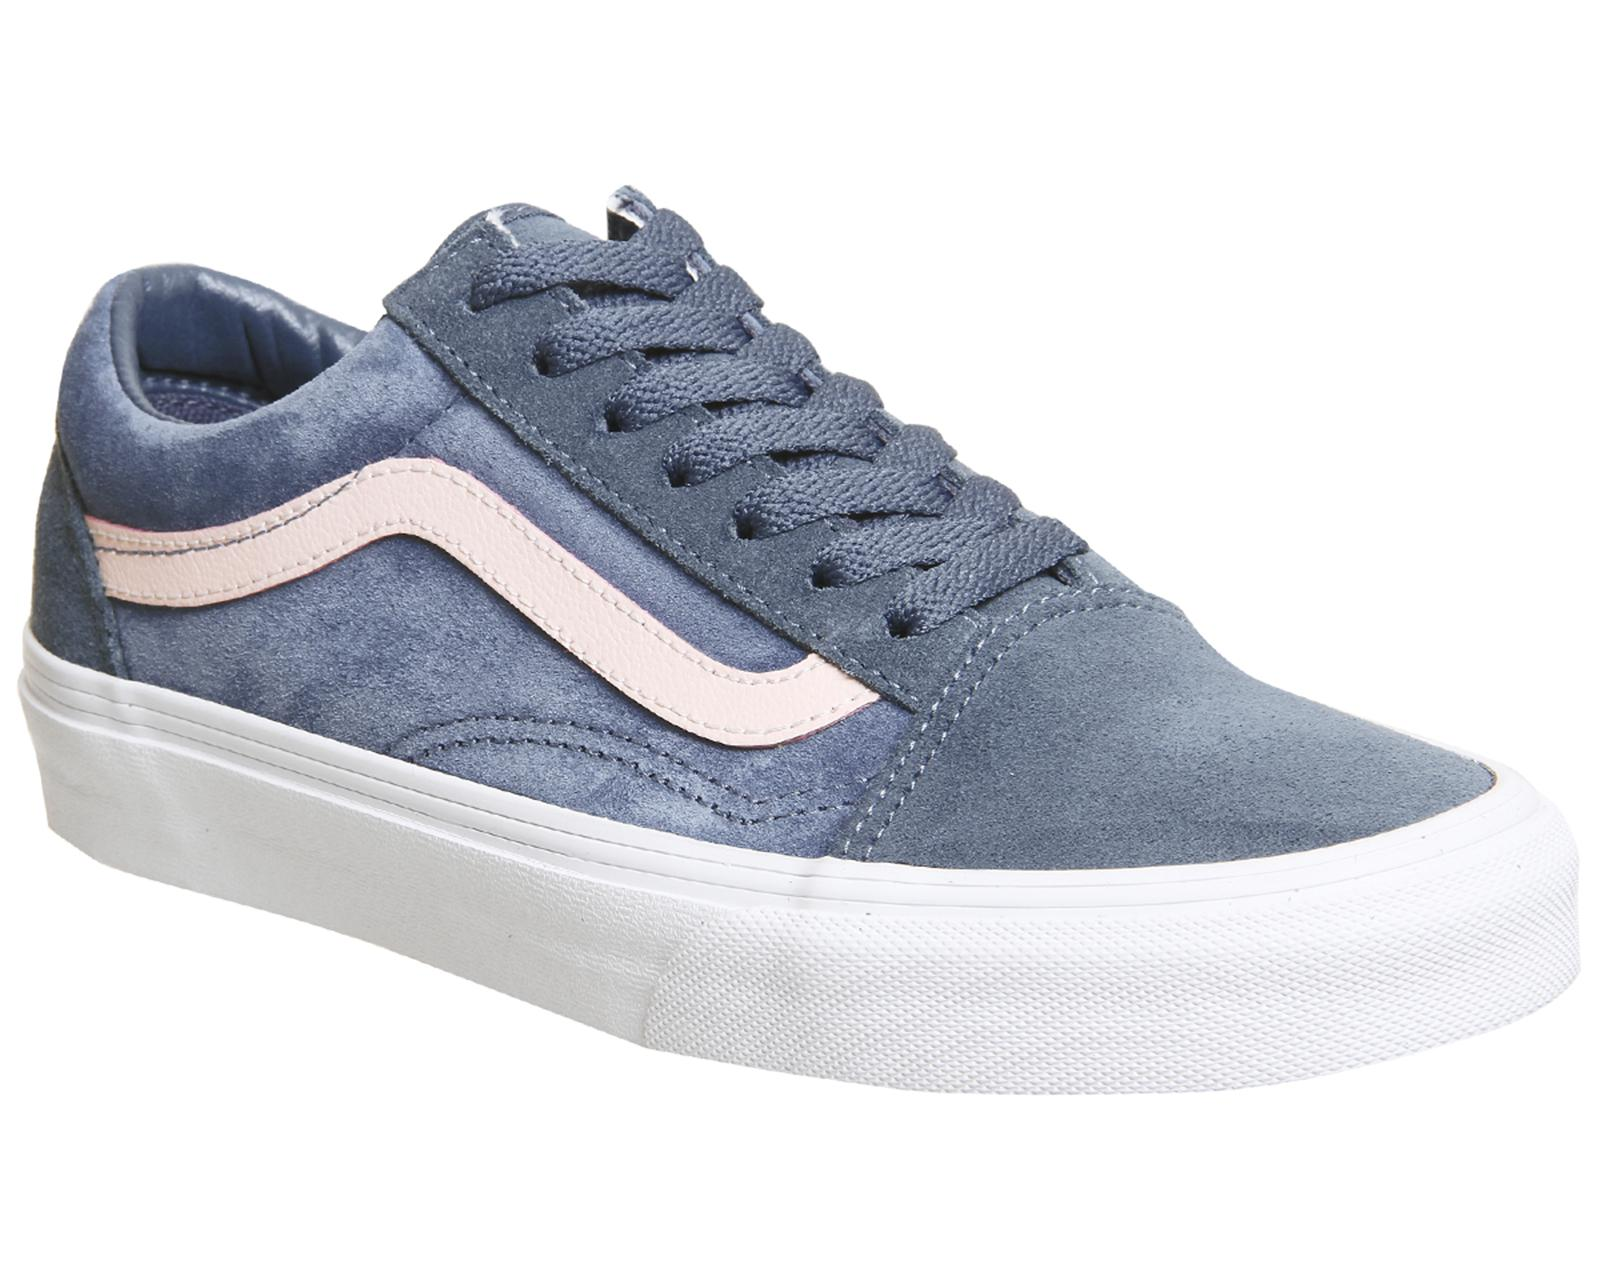 129032c806ac Lyst - Vans Old Skool Trainers in Blue for Men